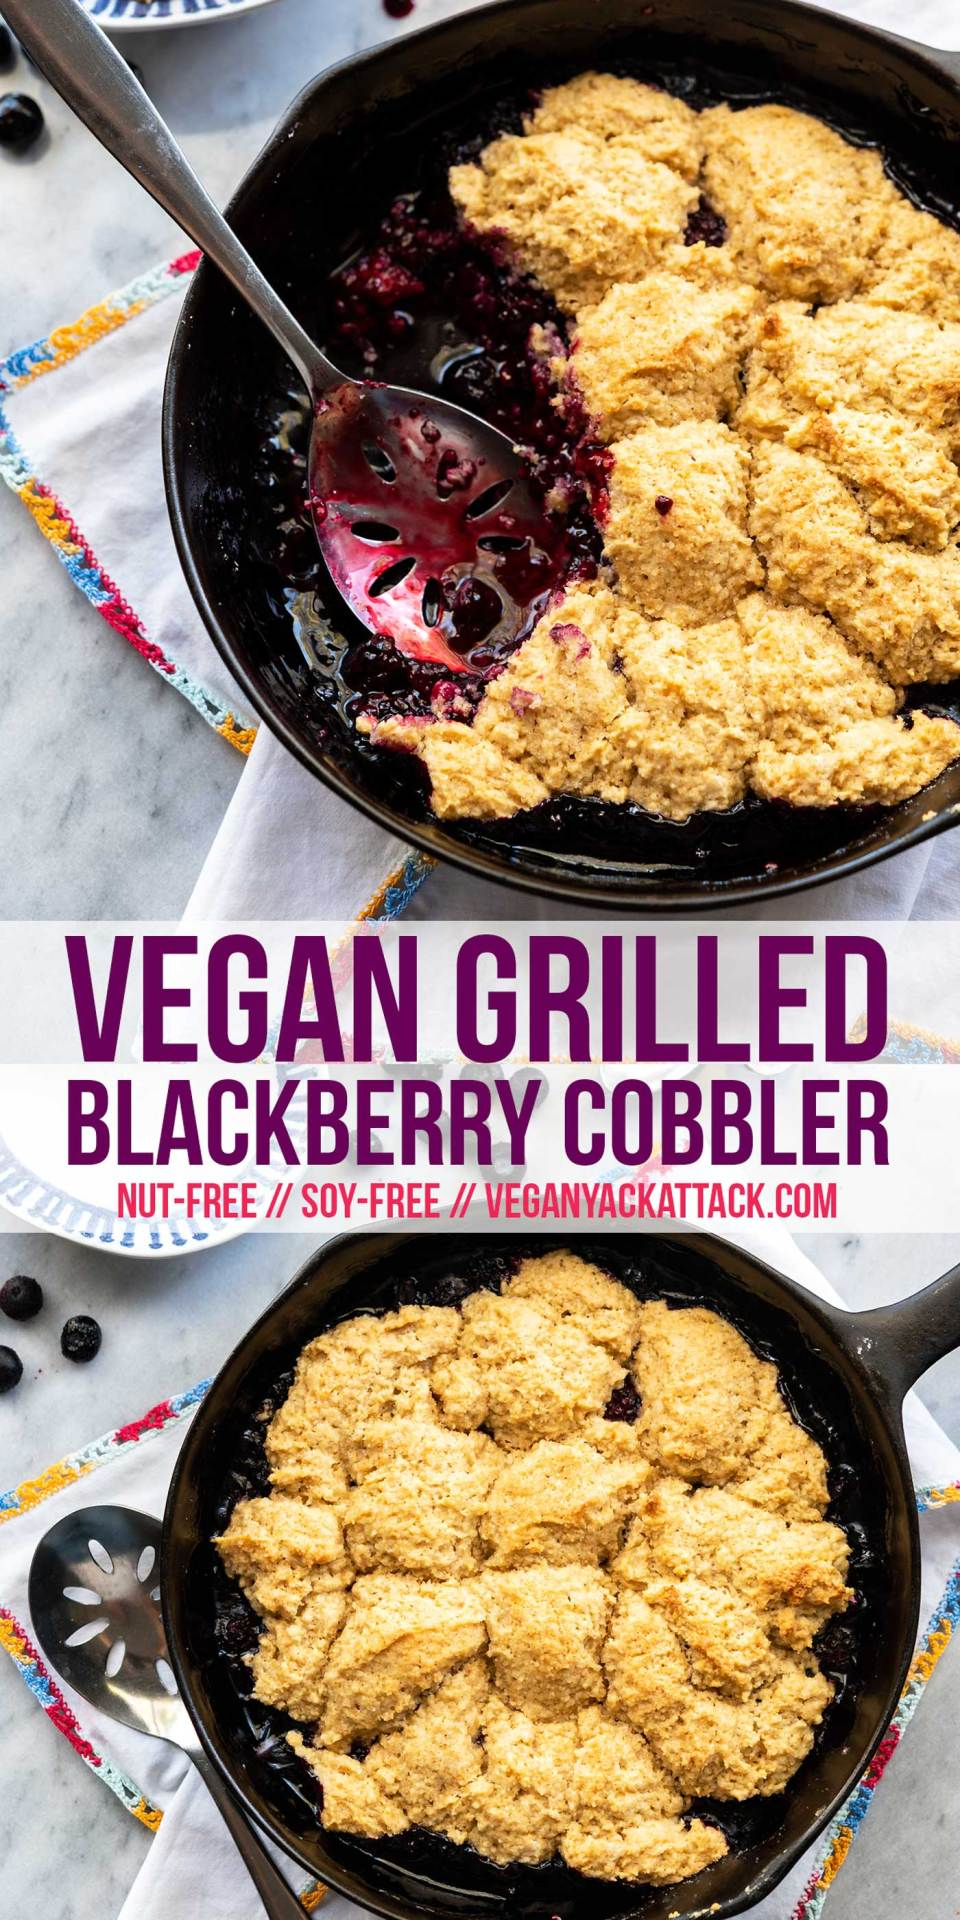 No need to heat up your kitchen with the oven this summer, make this Grilled Blackberry Cobbler. A fluffy biscuit topping, fresh berries, and super delicious; plus, vegan!